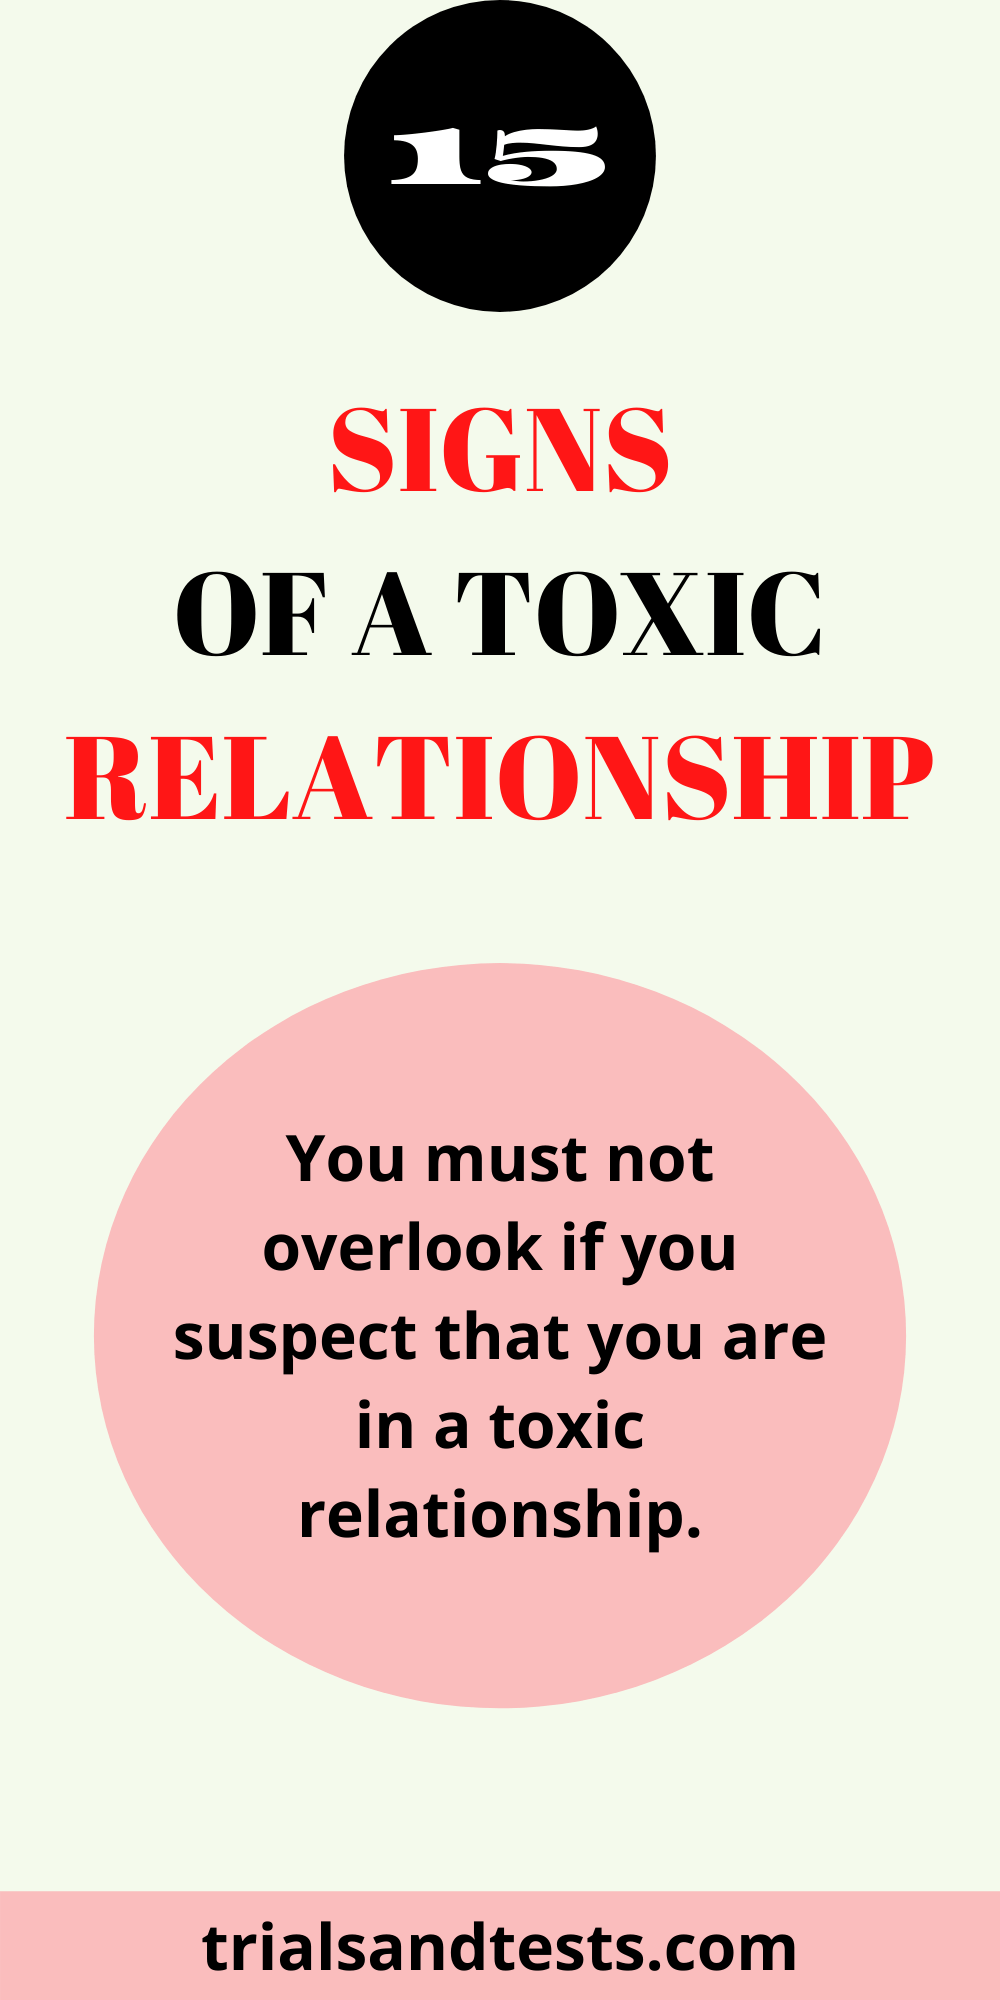 signs-of-a-toxic-relationship